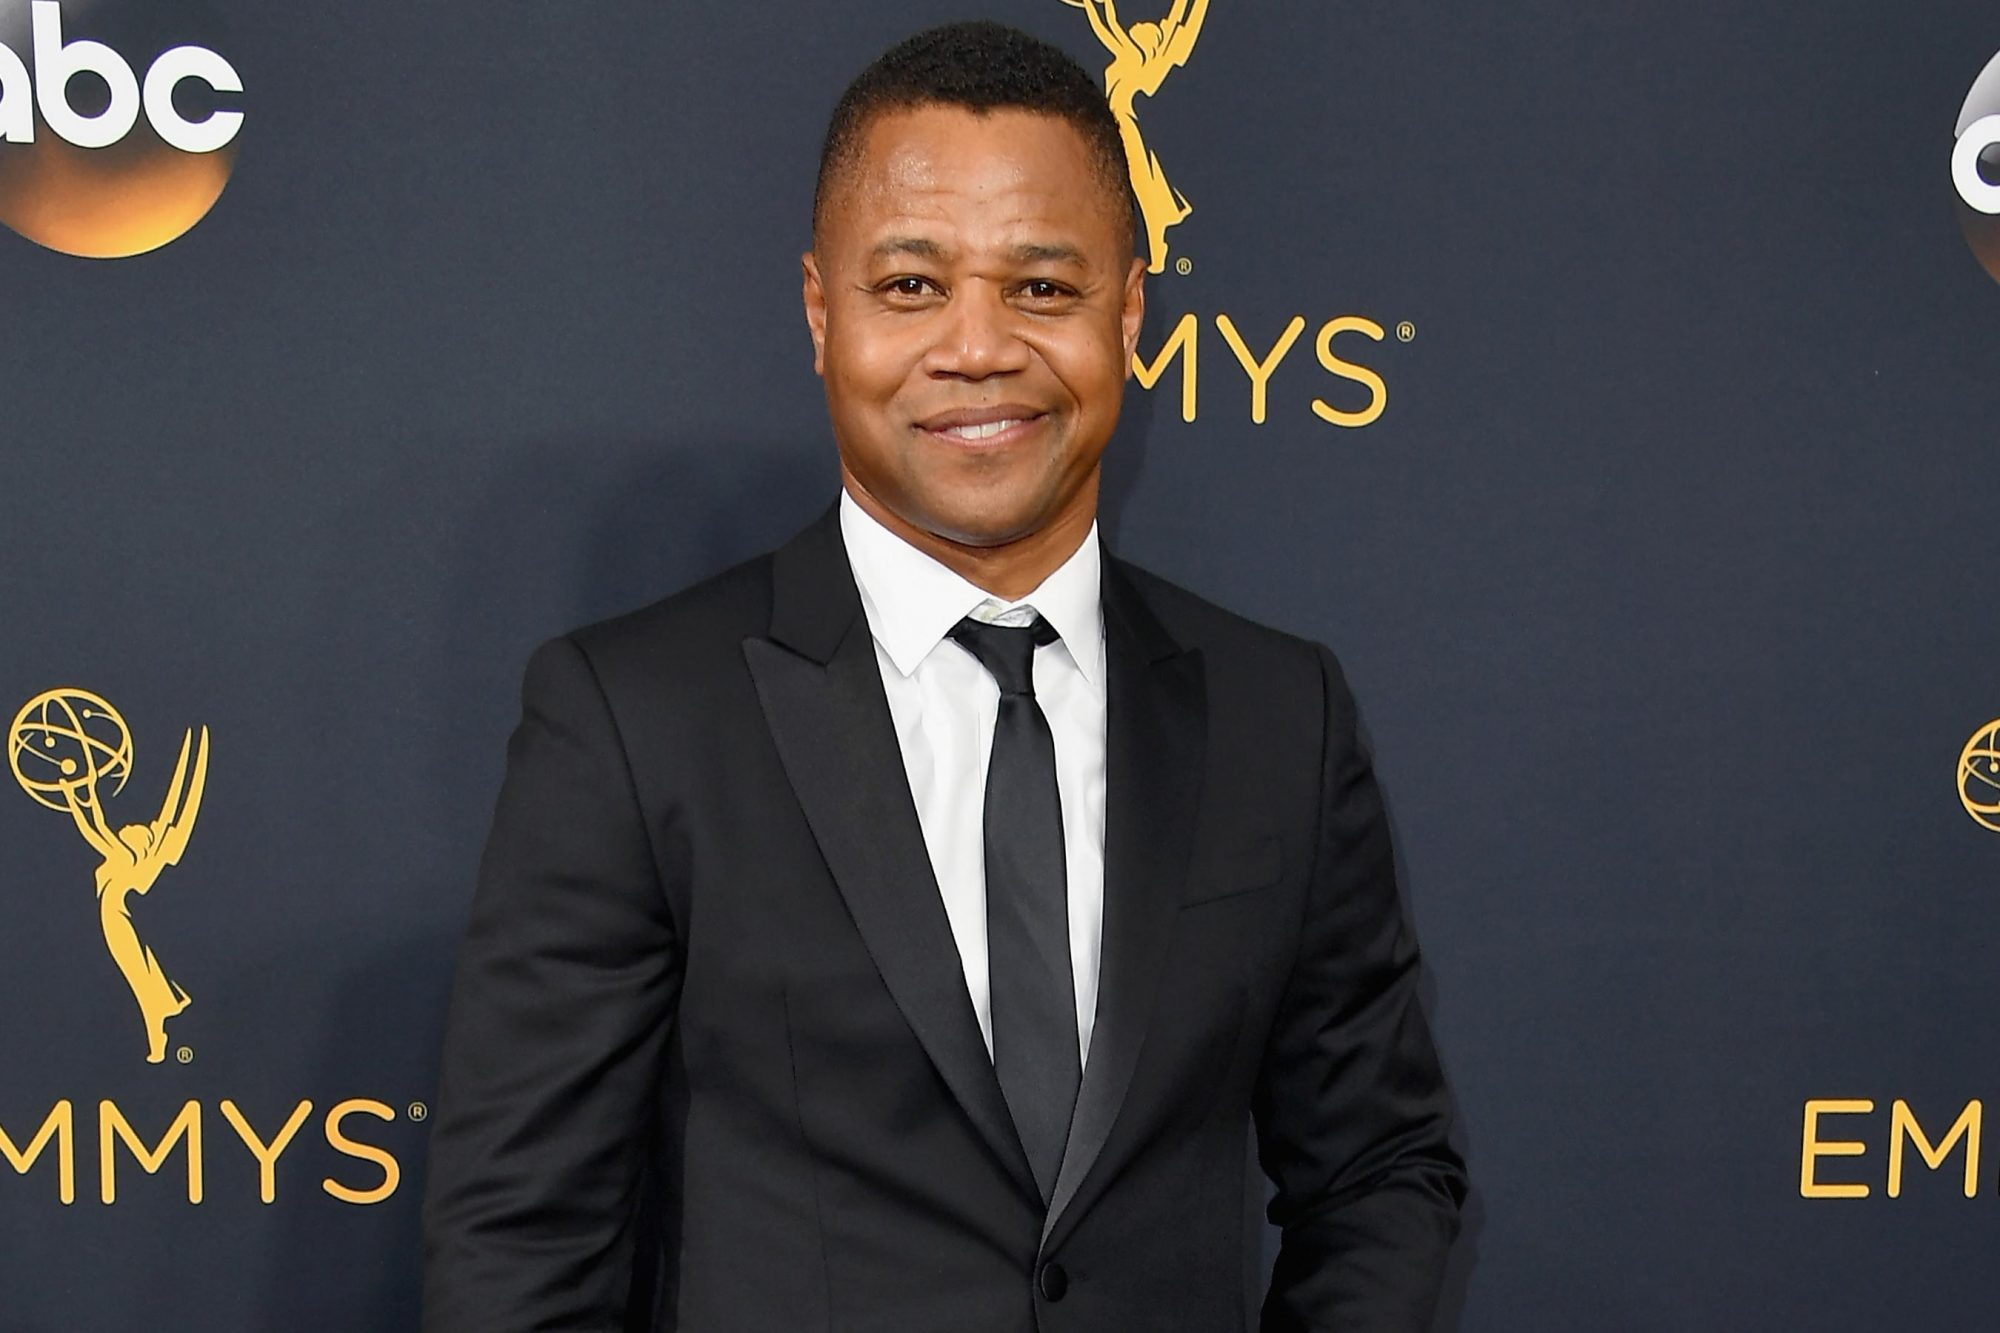 Cuba Gooding Jr. attends the 68th Annual Primetime Emmy Awards at Microsoft Theater on September 18, 2016 in Los Angeles, California. (Photo by Steve Granitz/WireImage)